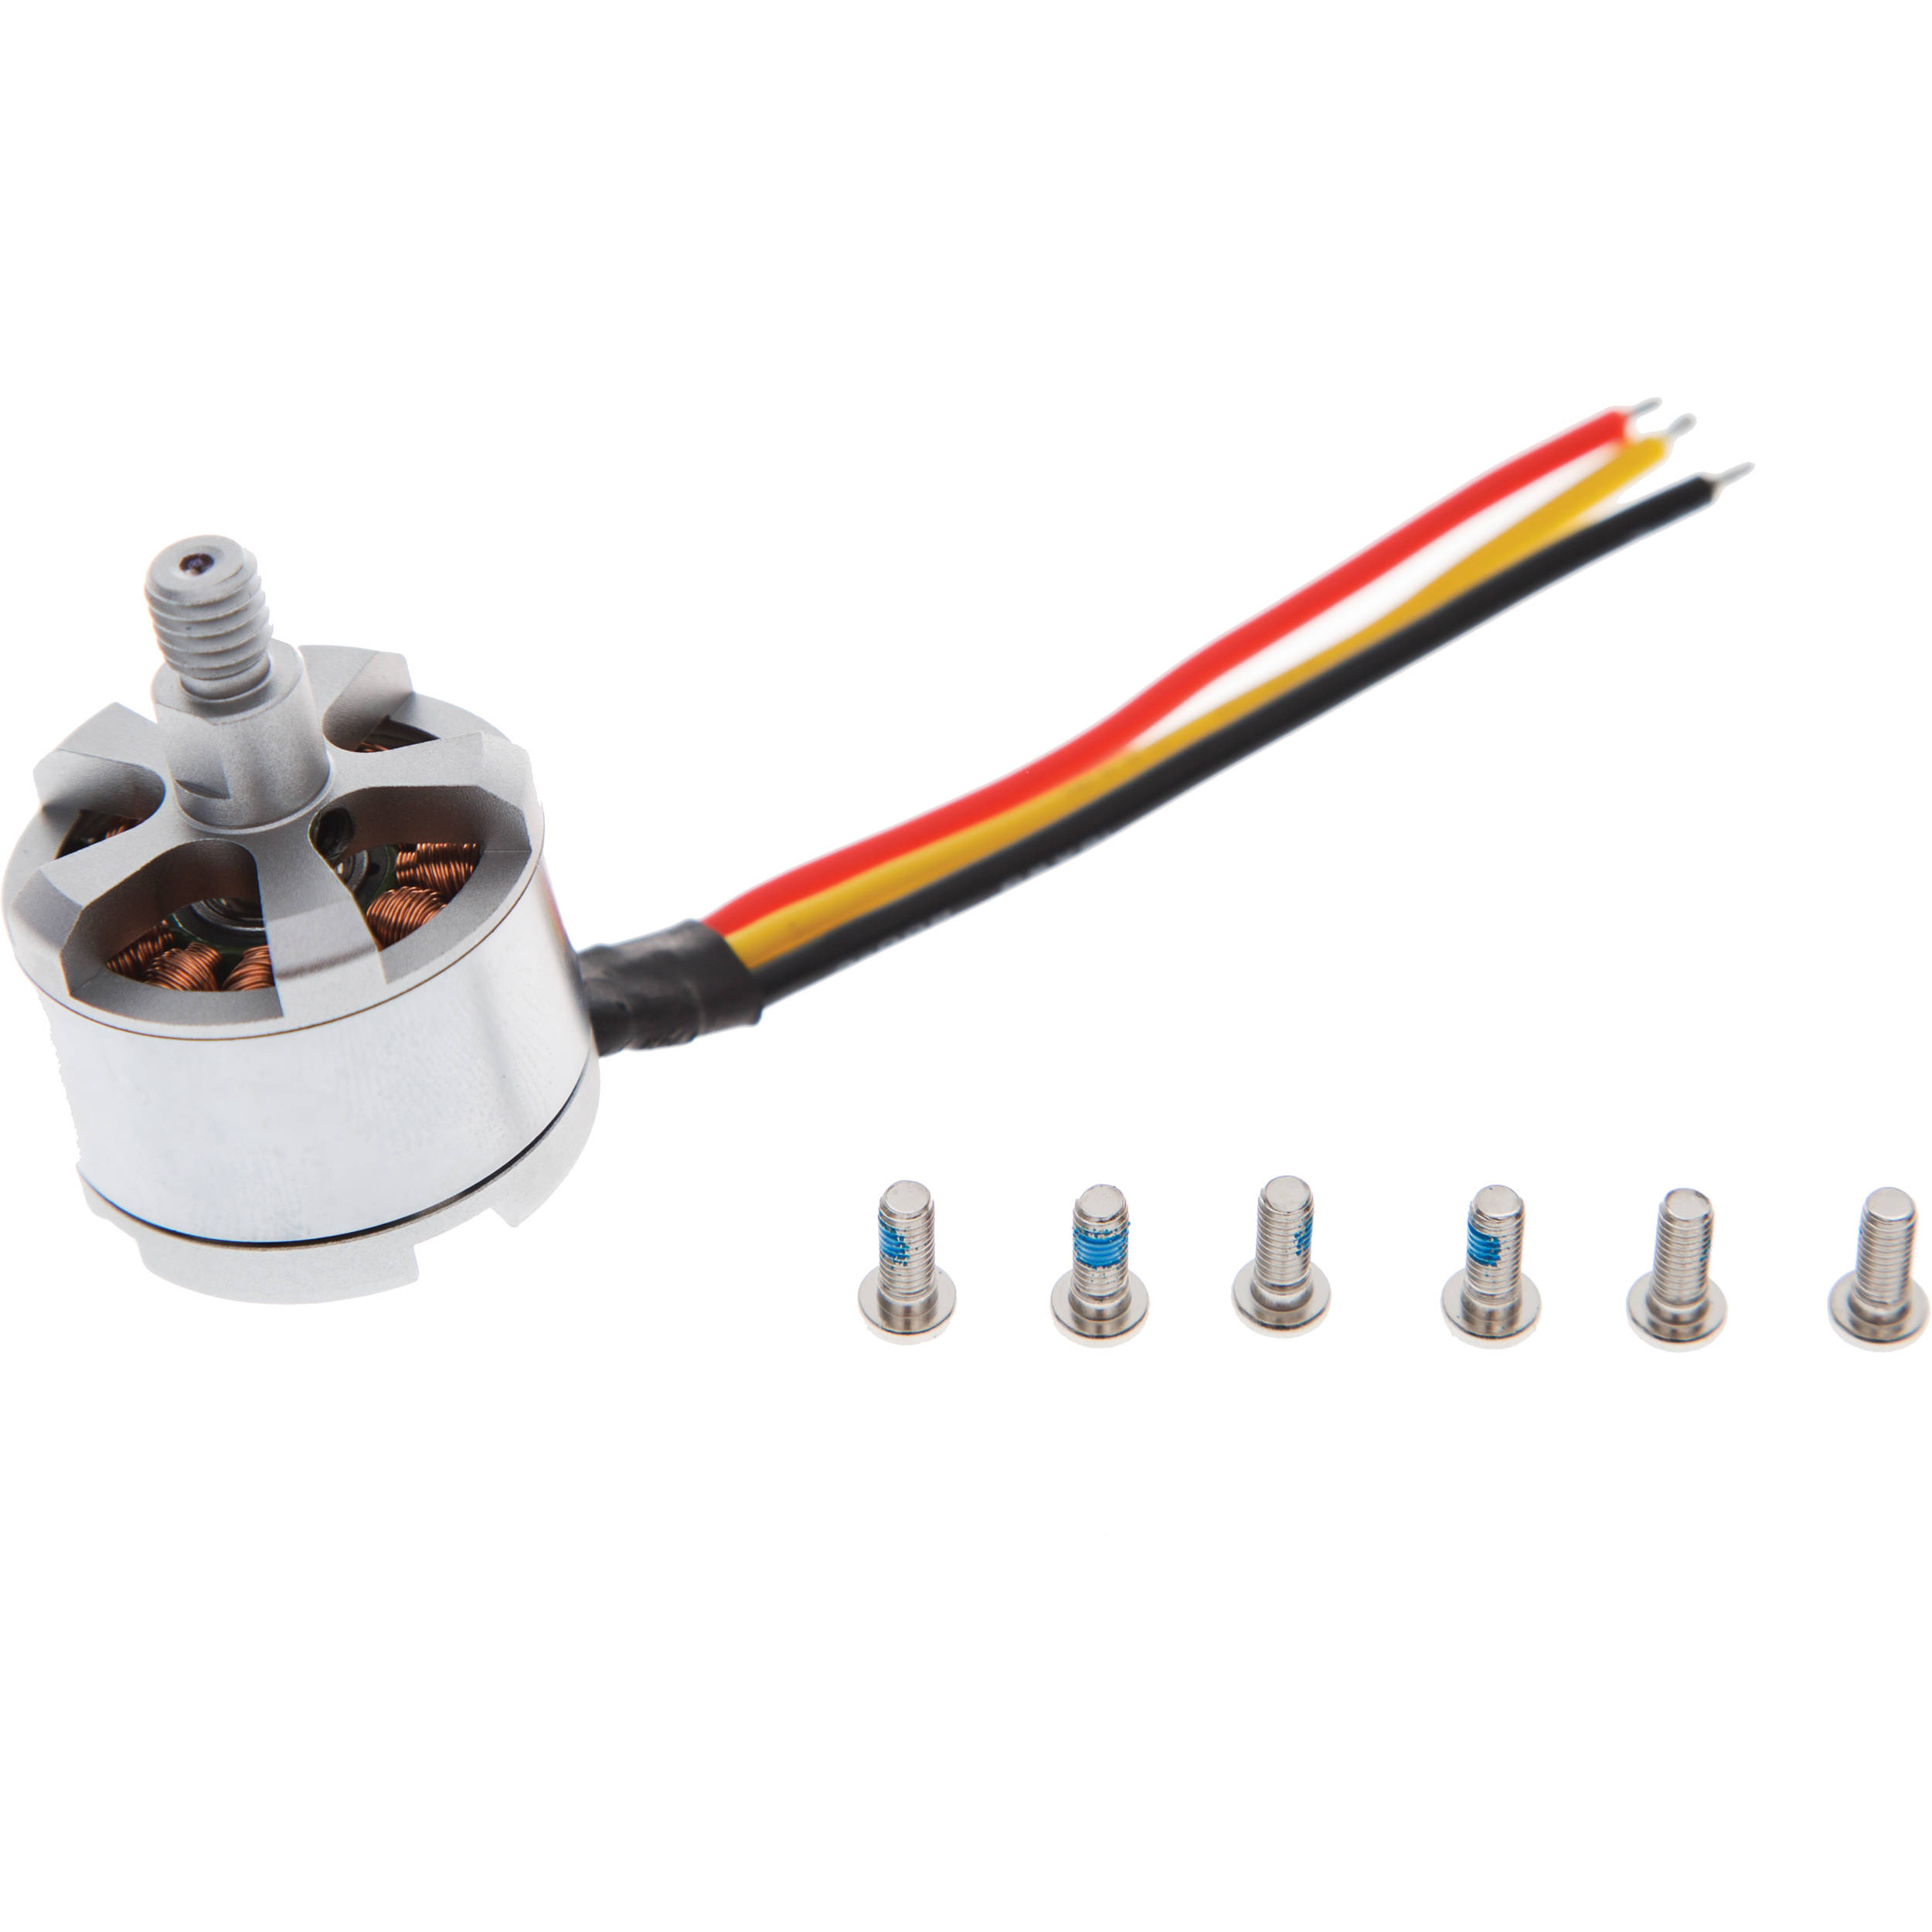 DJI CW Replacement Motor for Phantom 1 Quadcopter (Part 22)